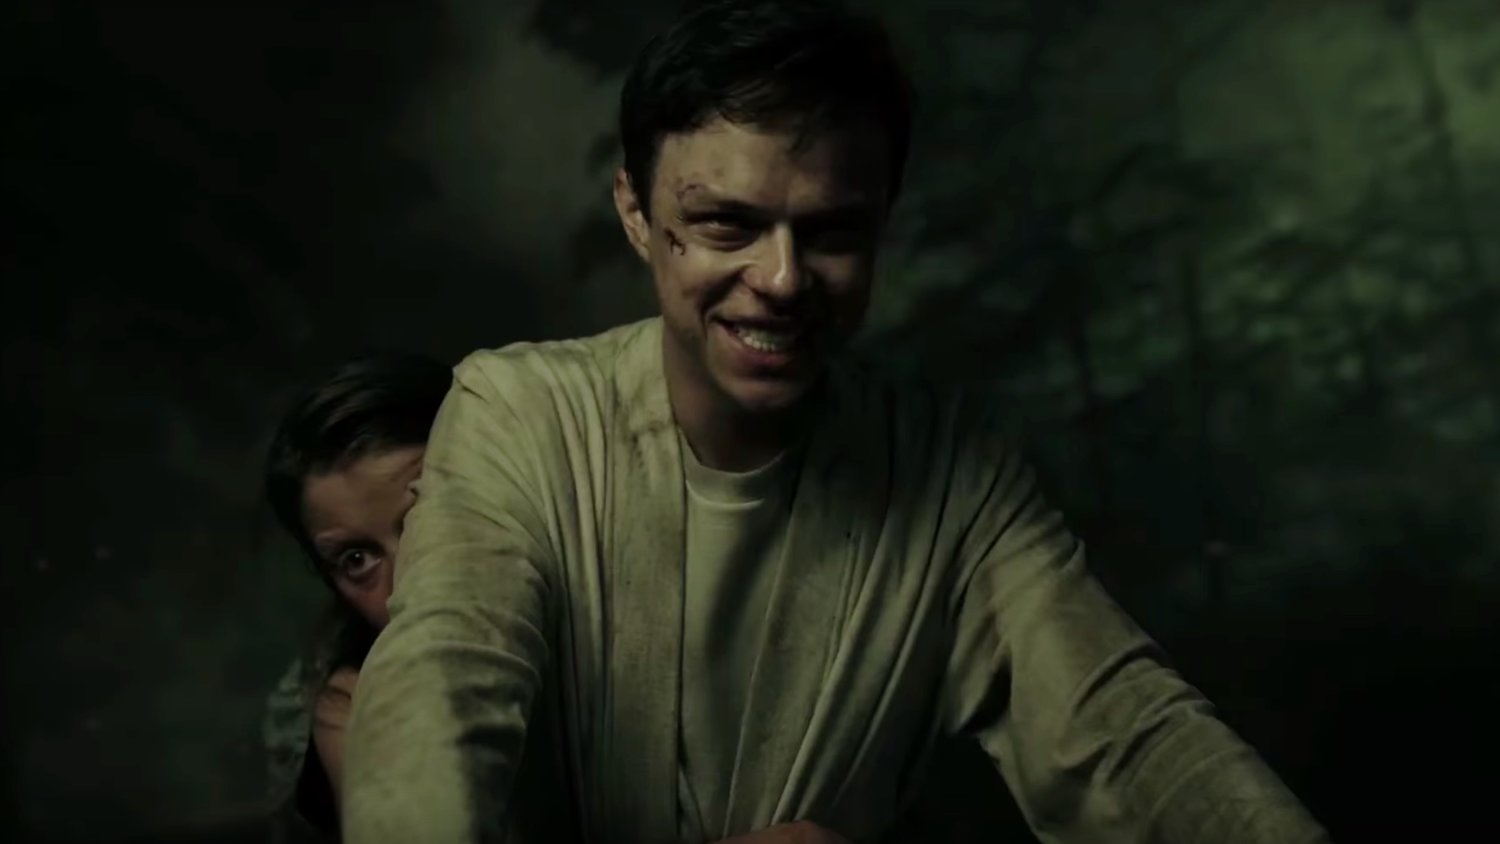 Creepy and Sinister Super Bowl Spot for A CURE FOR WELLNESS